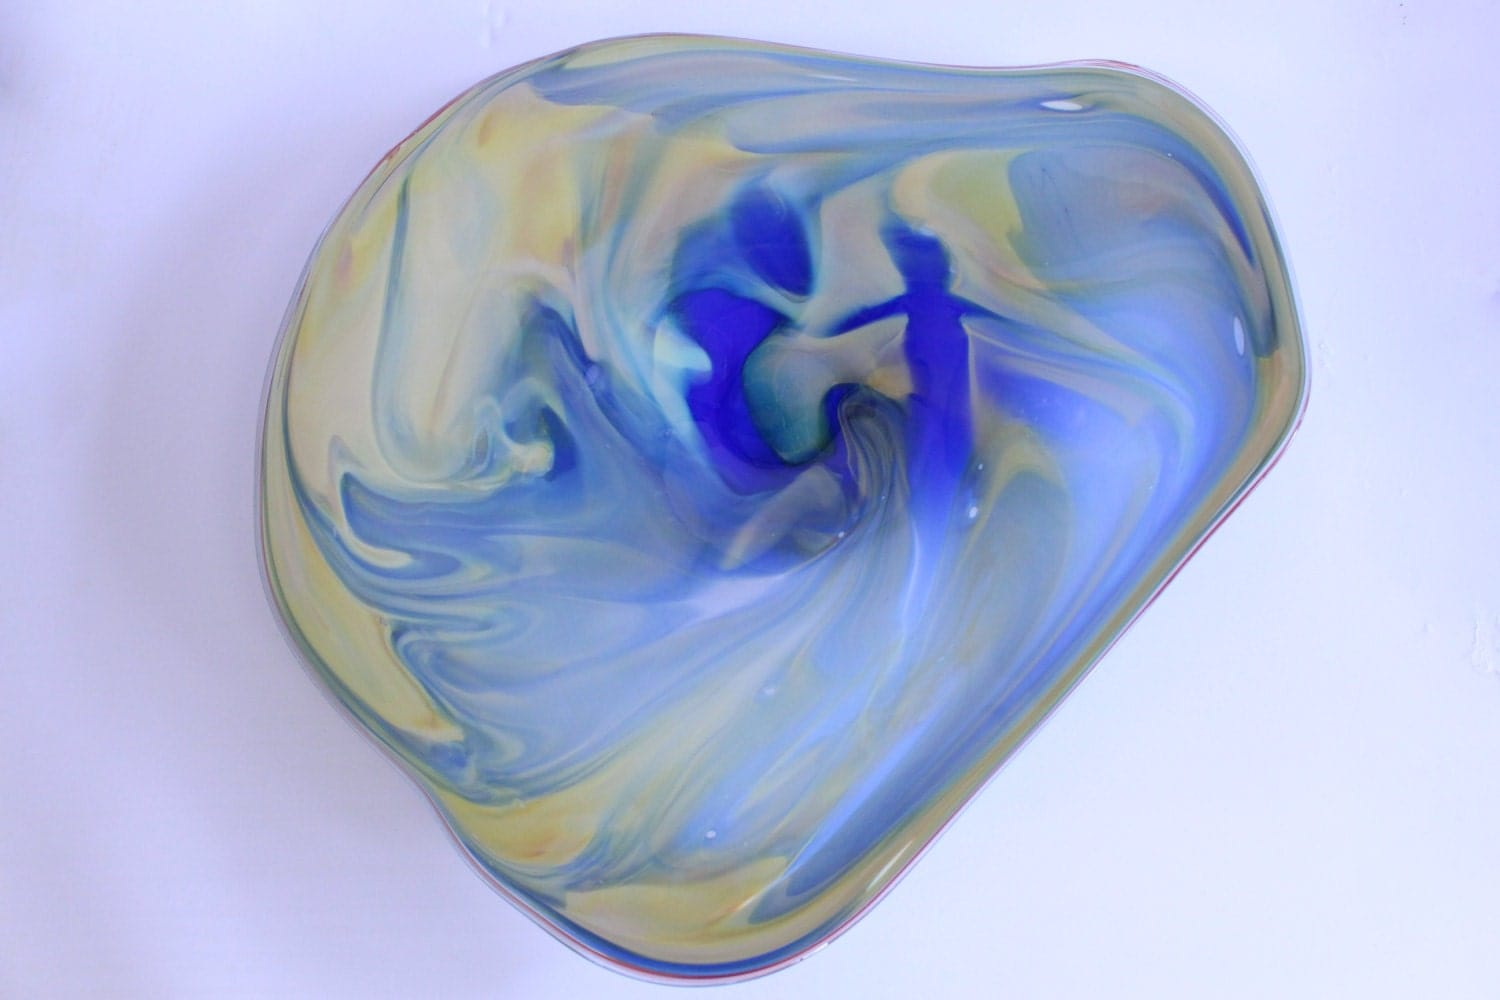 Blown Glass Wall Decor : Wall decor glass blown platter